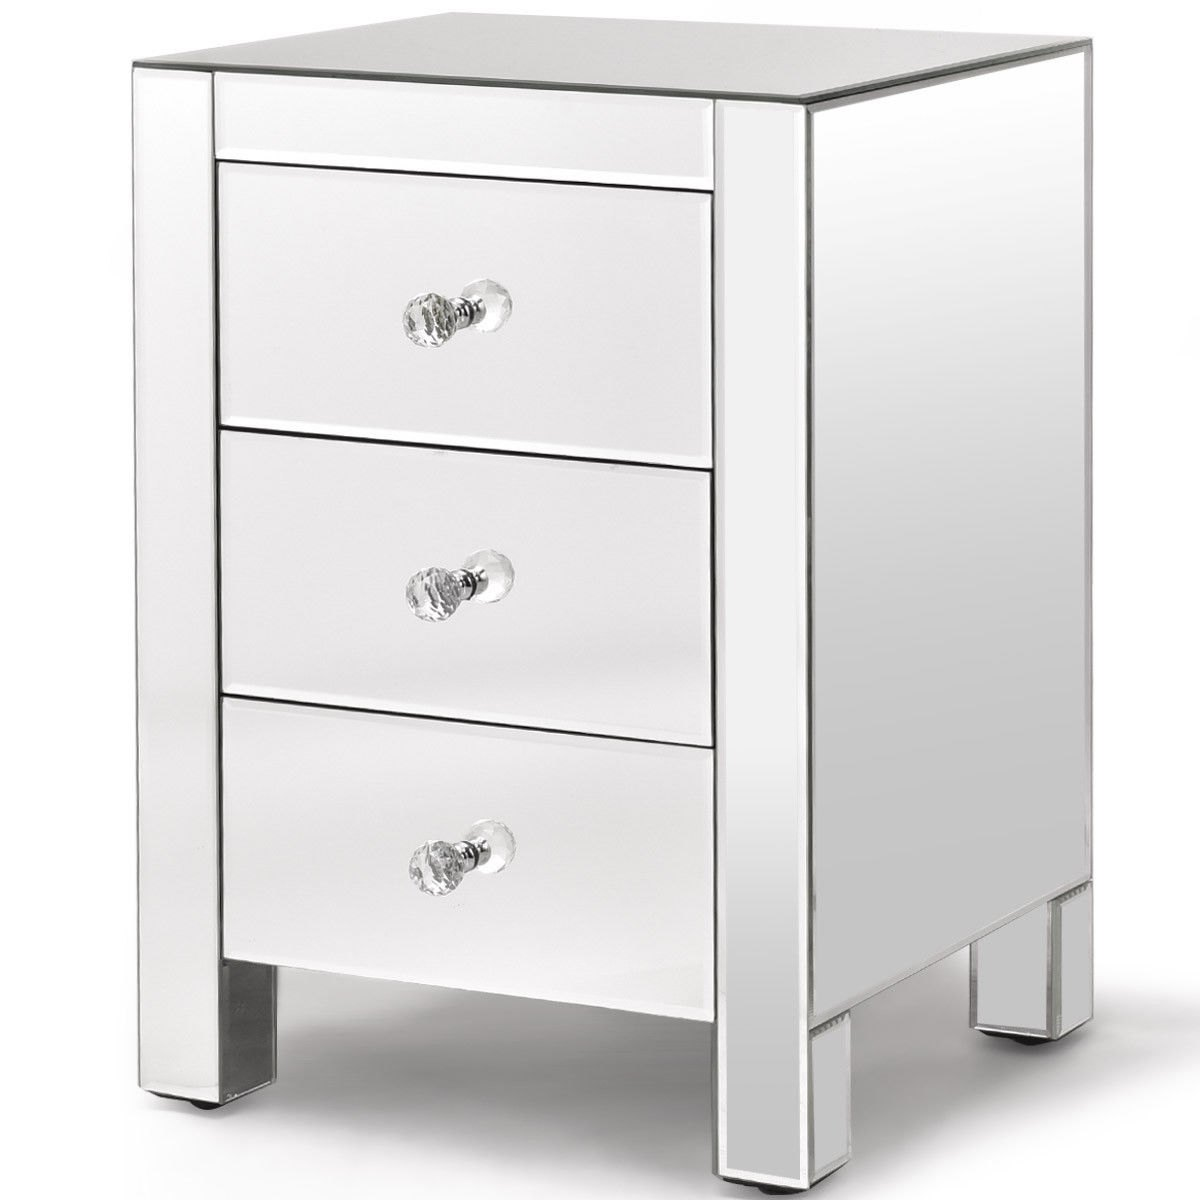 way mirrored nightstand drawer modern mirror end accent table with storage cabinet metal lamp chair side target ethan allen drop leaf coffee tall tables ikea for small spaces pine